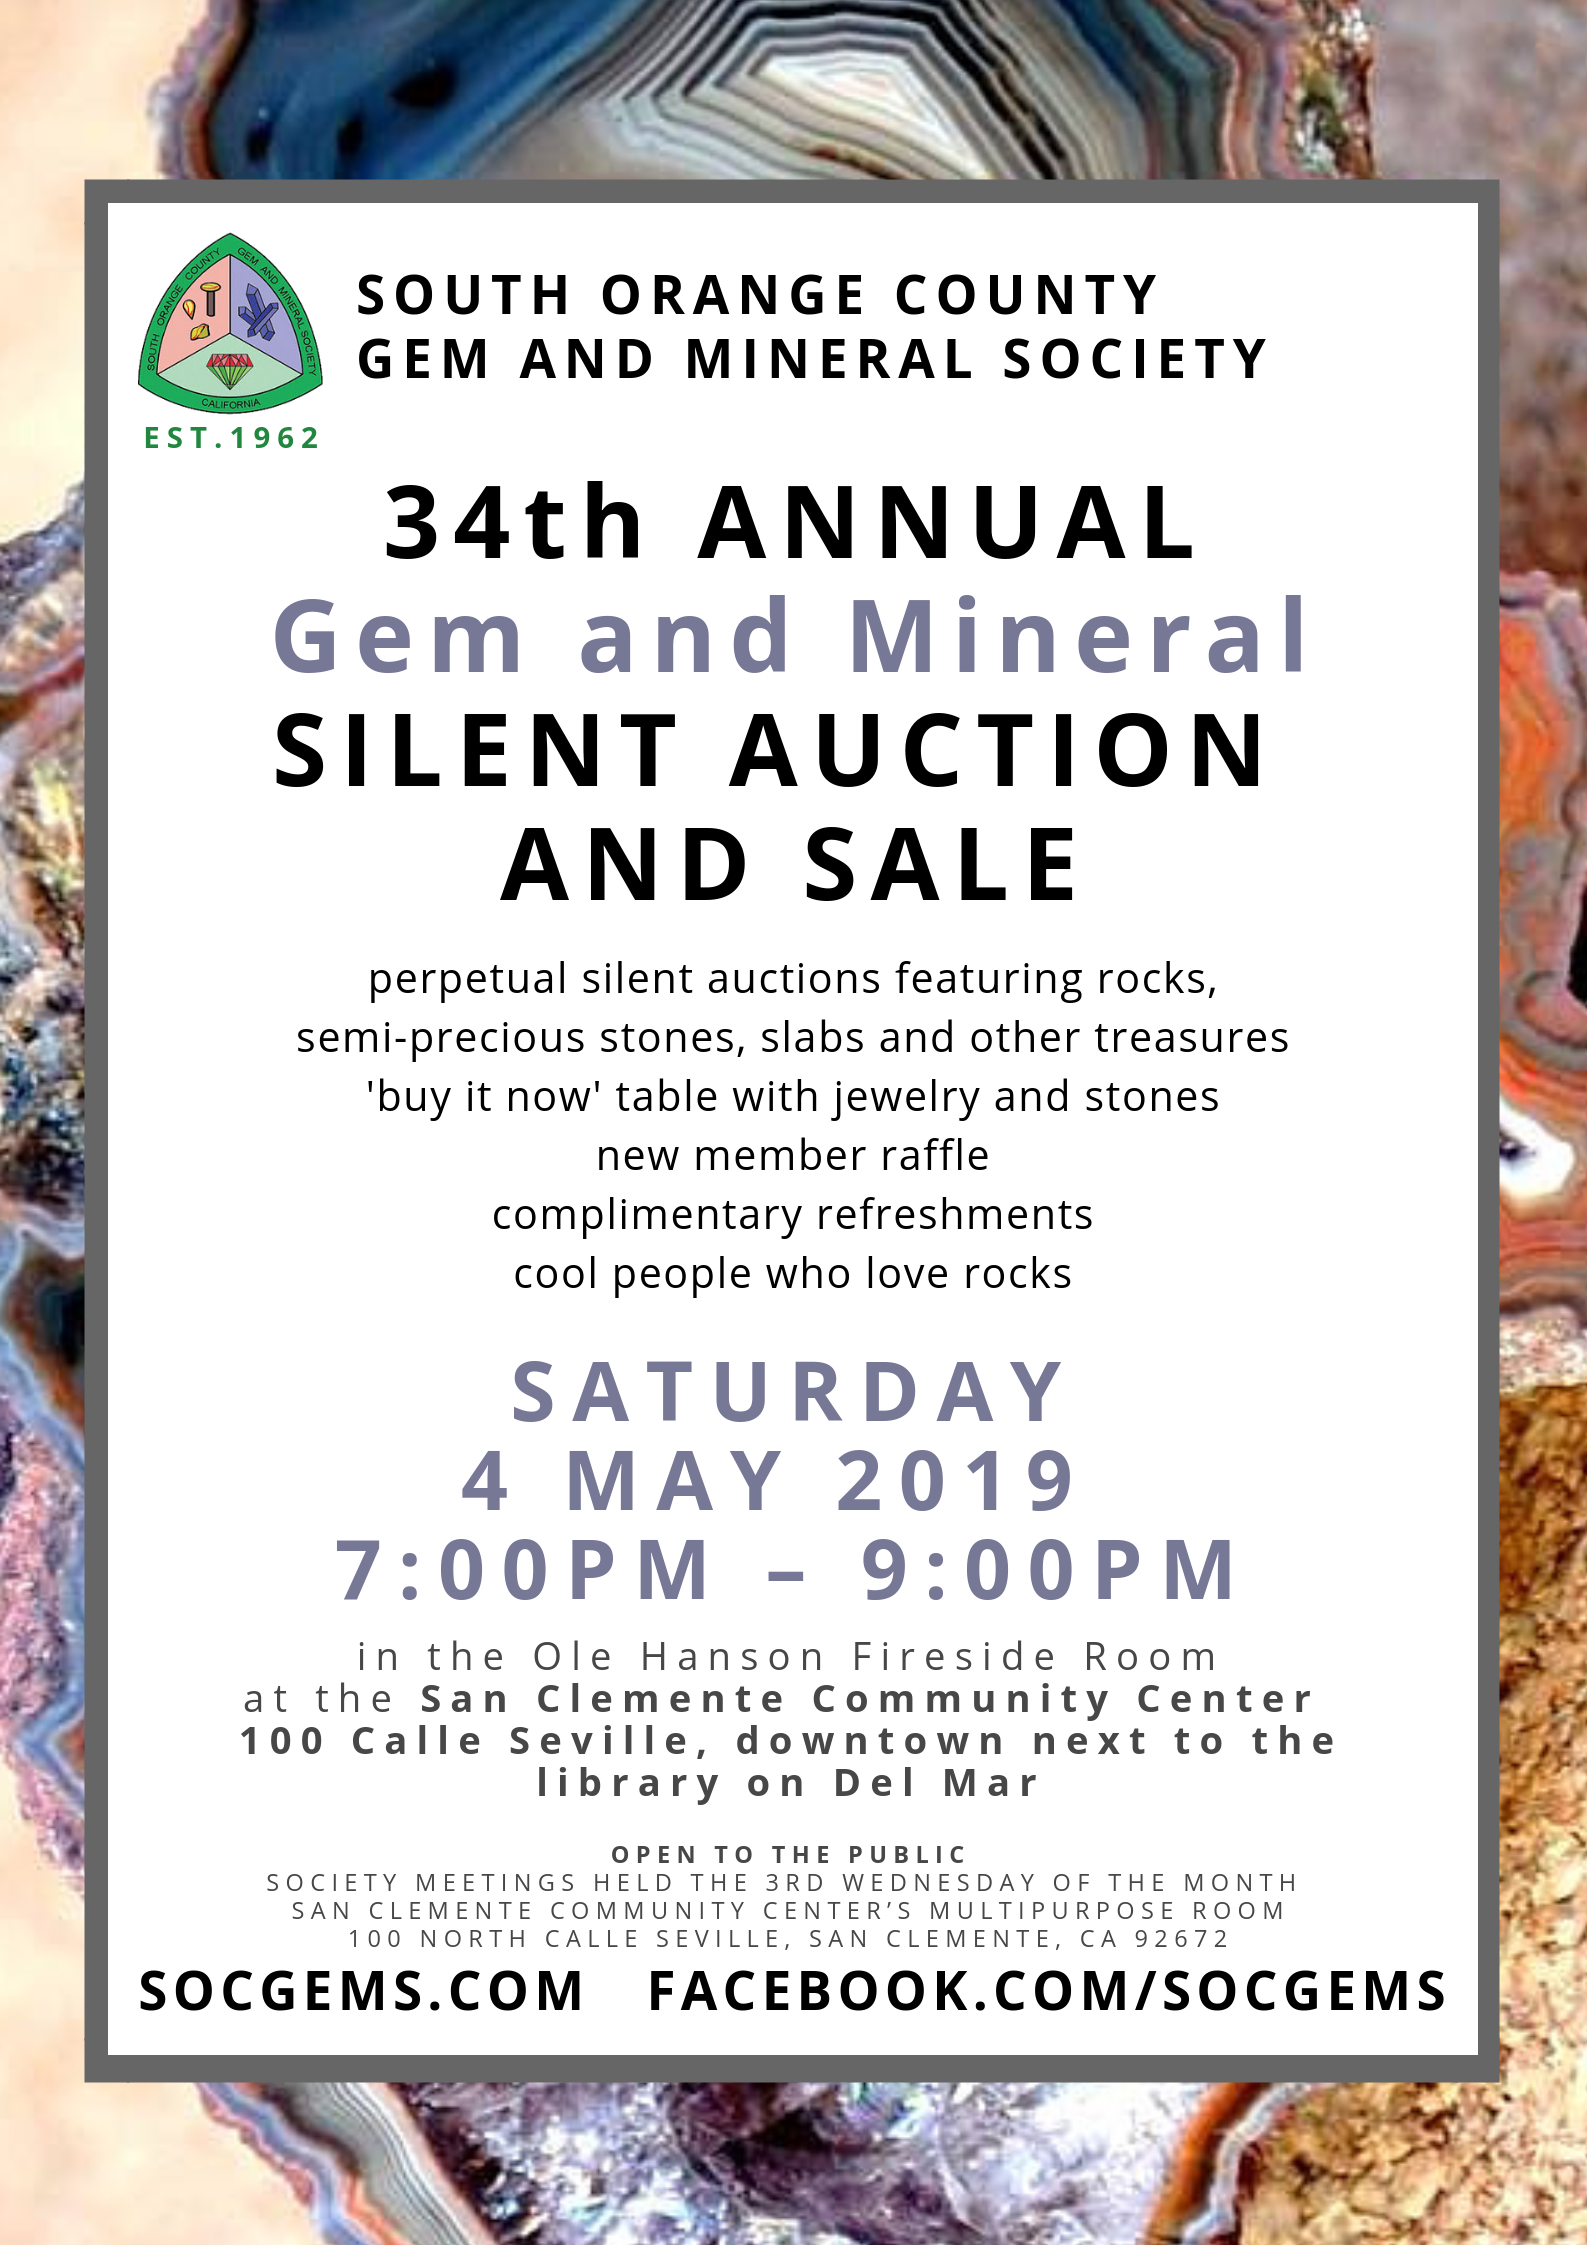 SOCGEMS annual silent auction